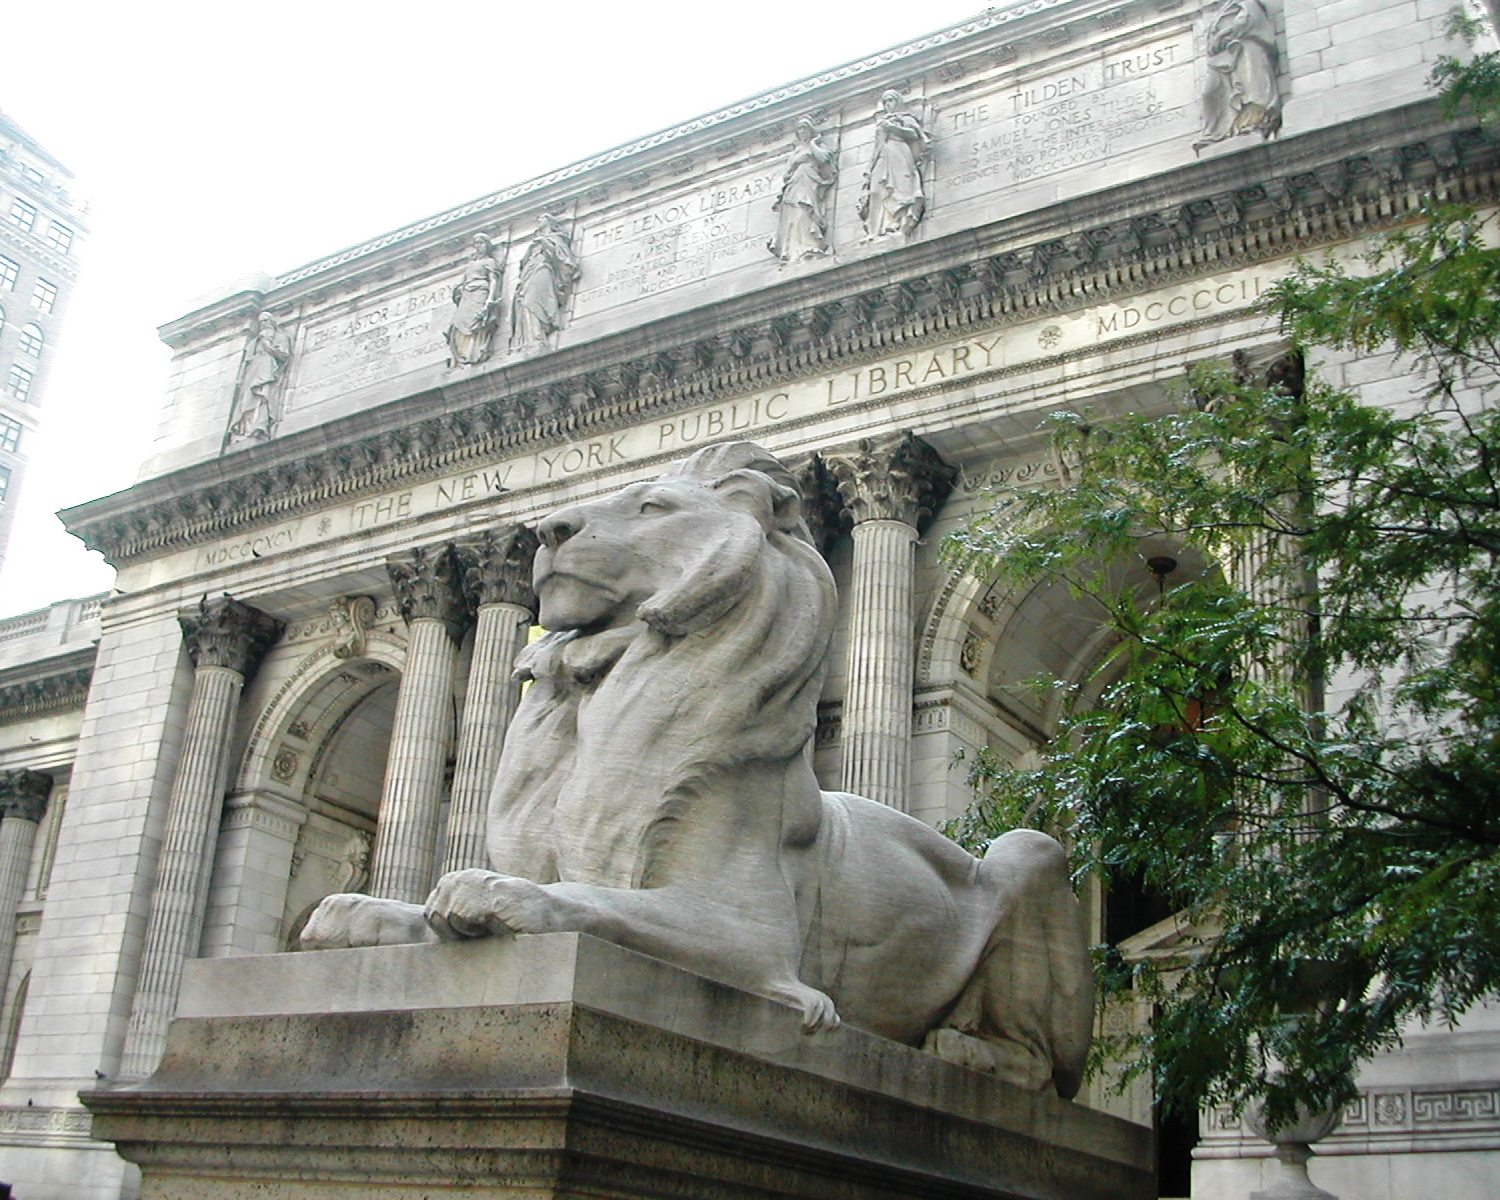 Lion statue outside the New York Public Library